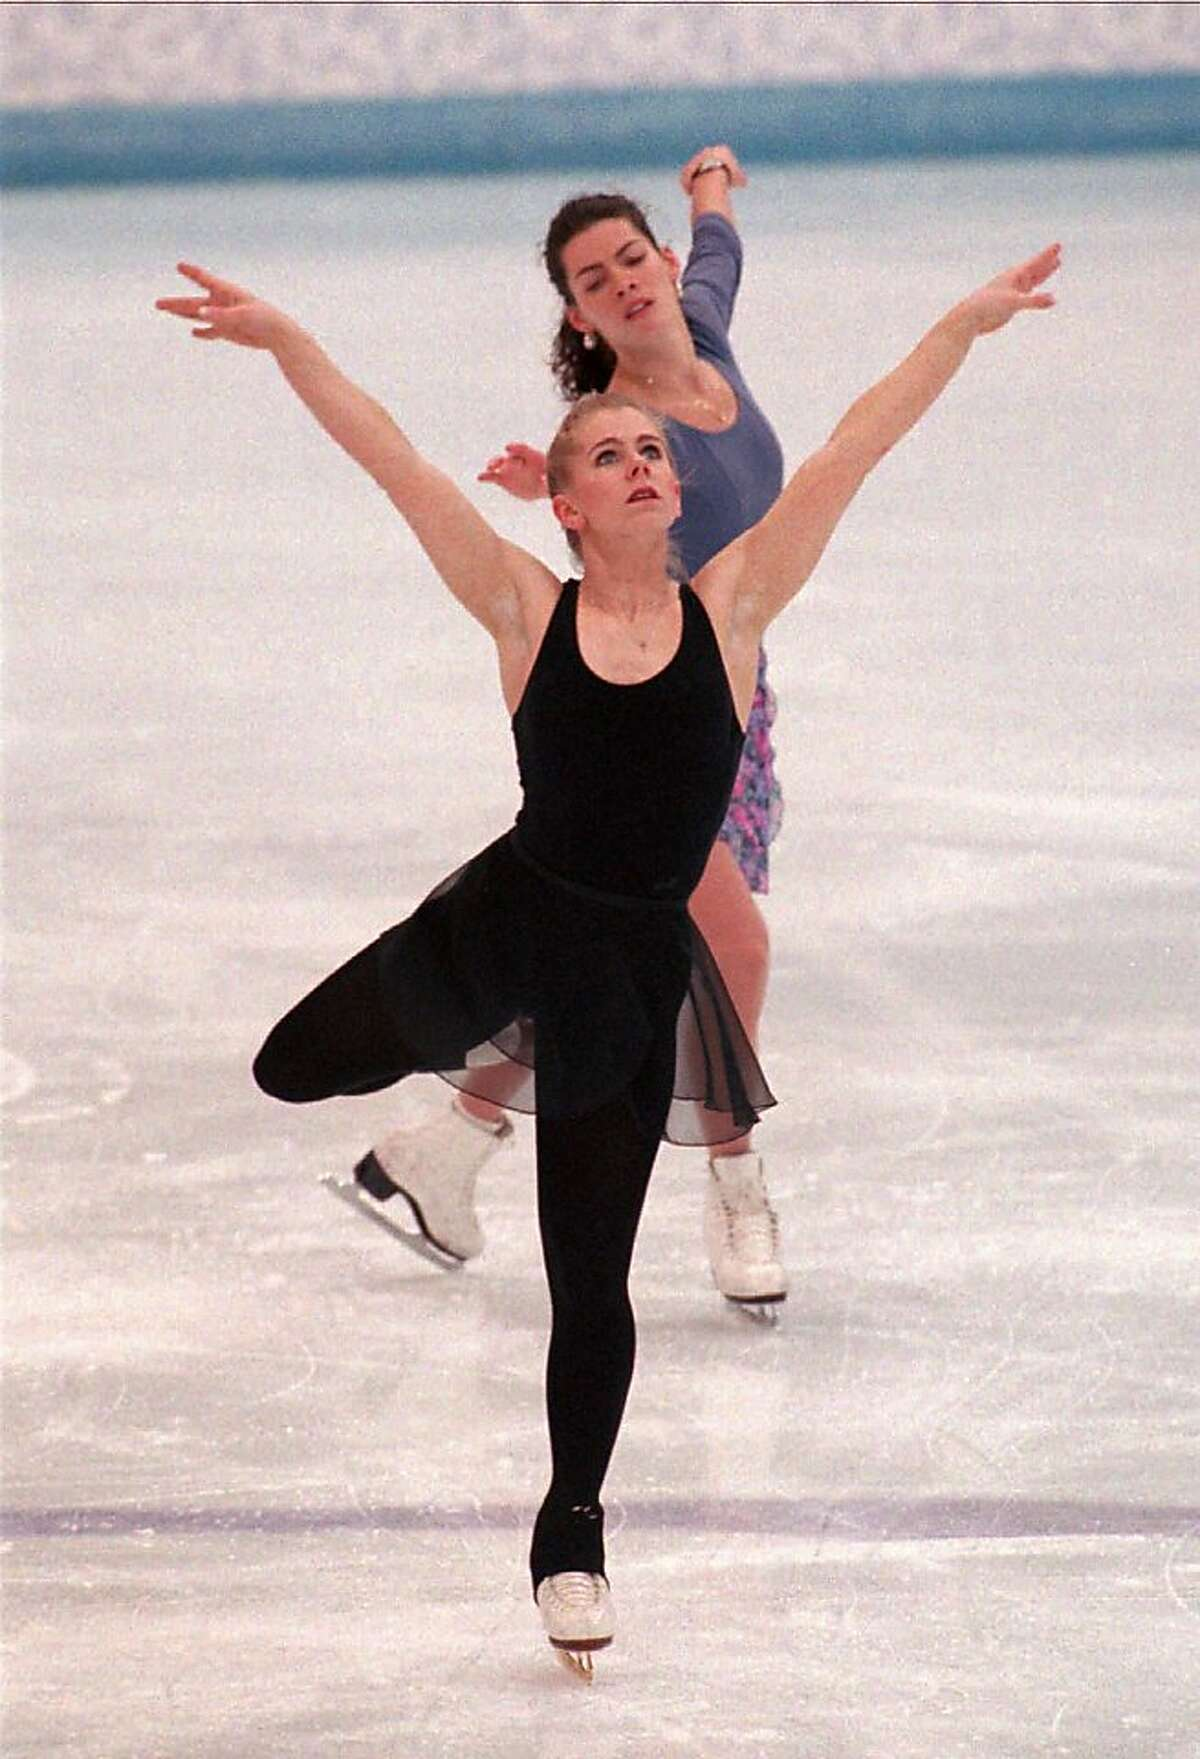 American figure skaters Tonya Harding and Nancy Kerrigan, rear, skate through their routines during the practice session Tuesday, Feb. 22, 1994, at the Hamar Olympic Amphitheatre in Hamar, Norway.